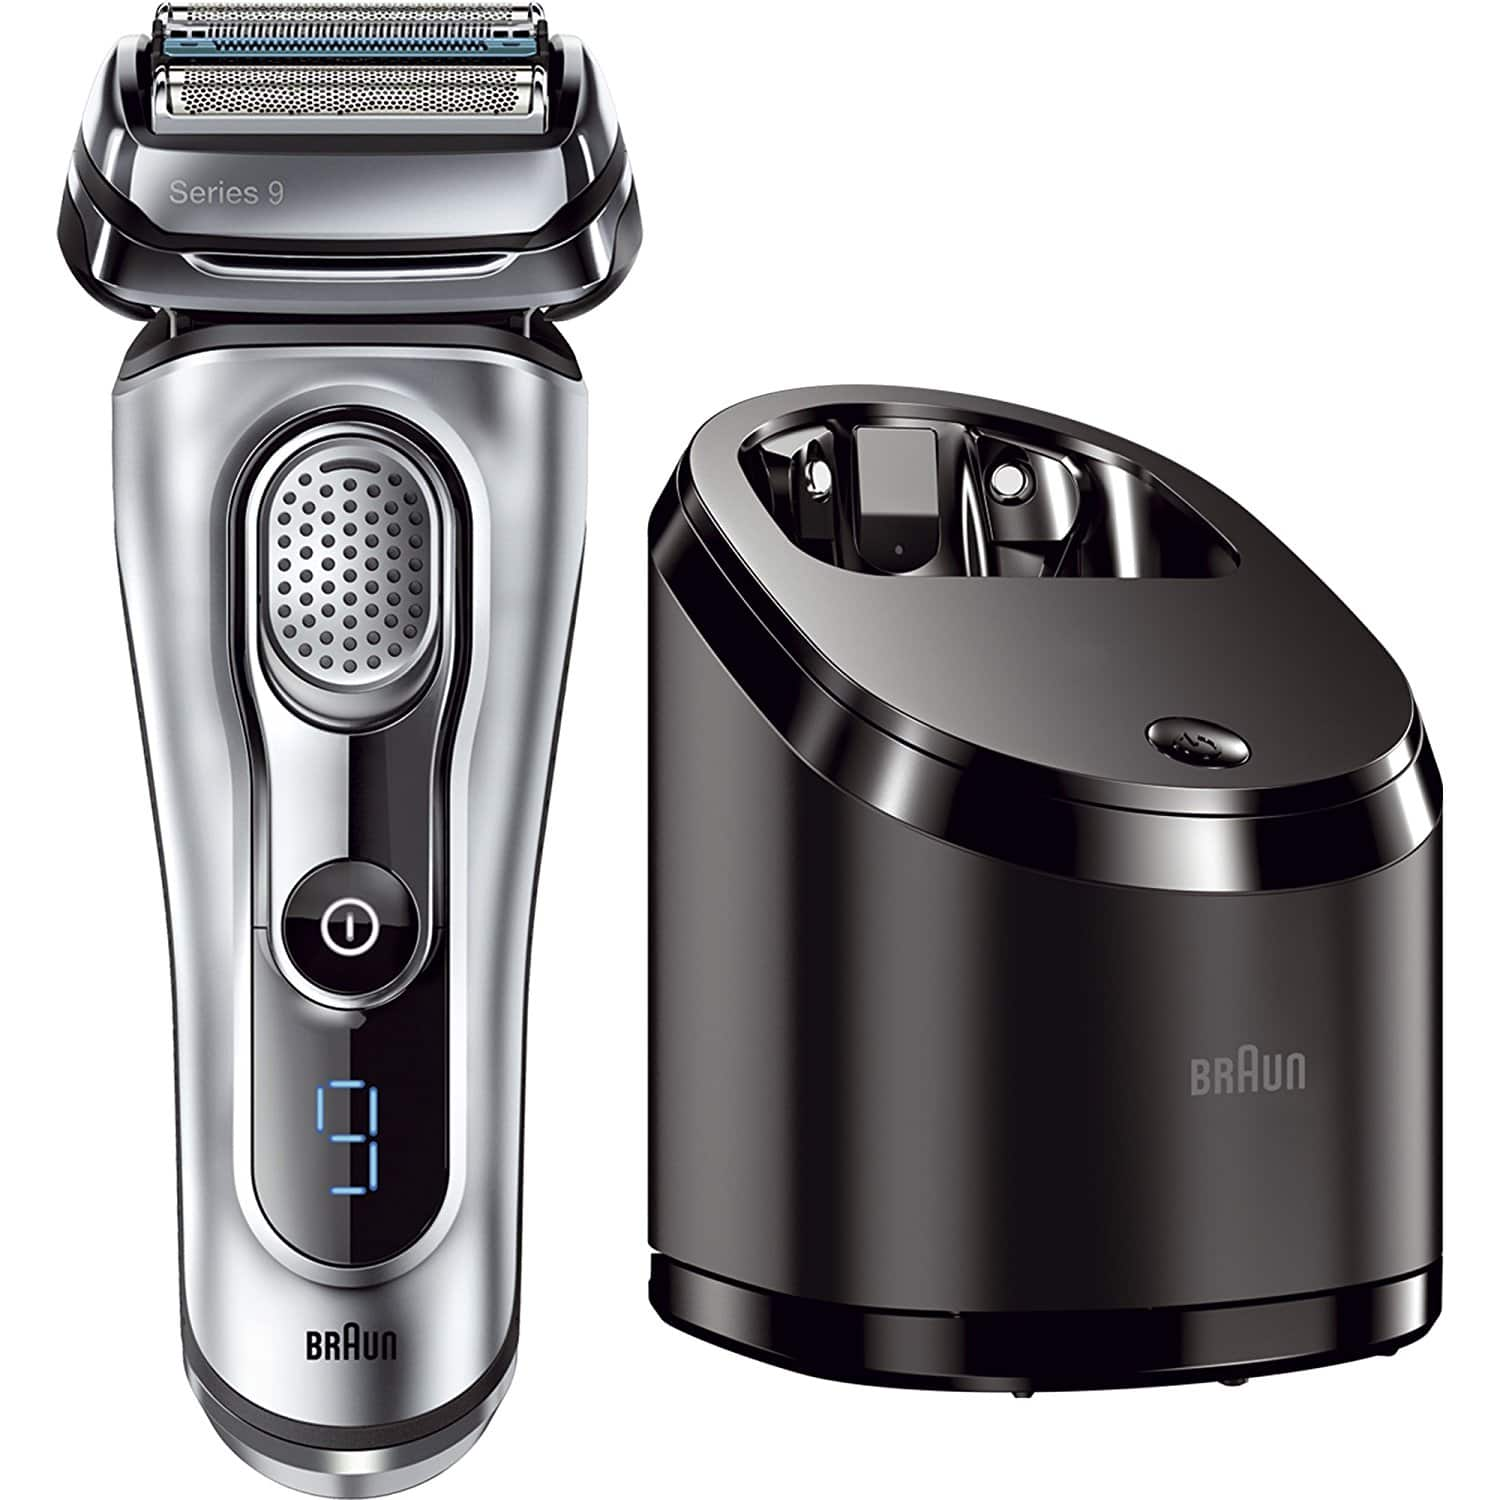 braun series 9 9090cc electric shaver w cleaning center. Black Bedroom Furniture Sets. Home Design Ideas